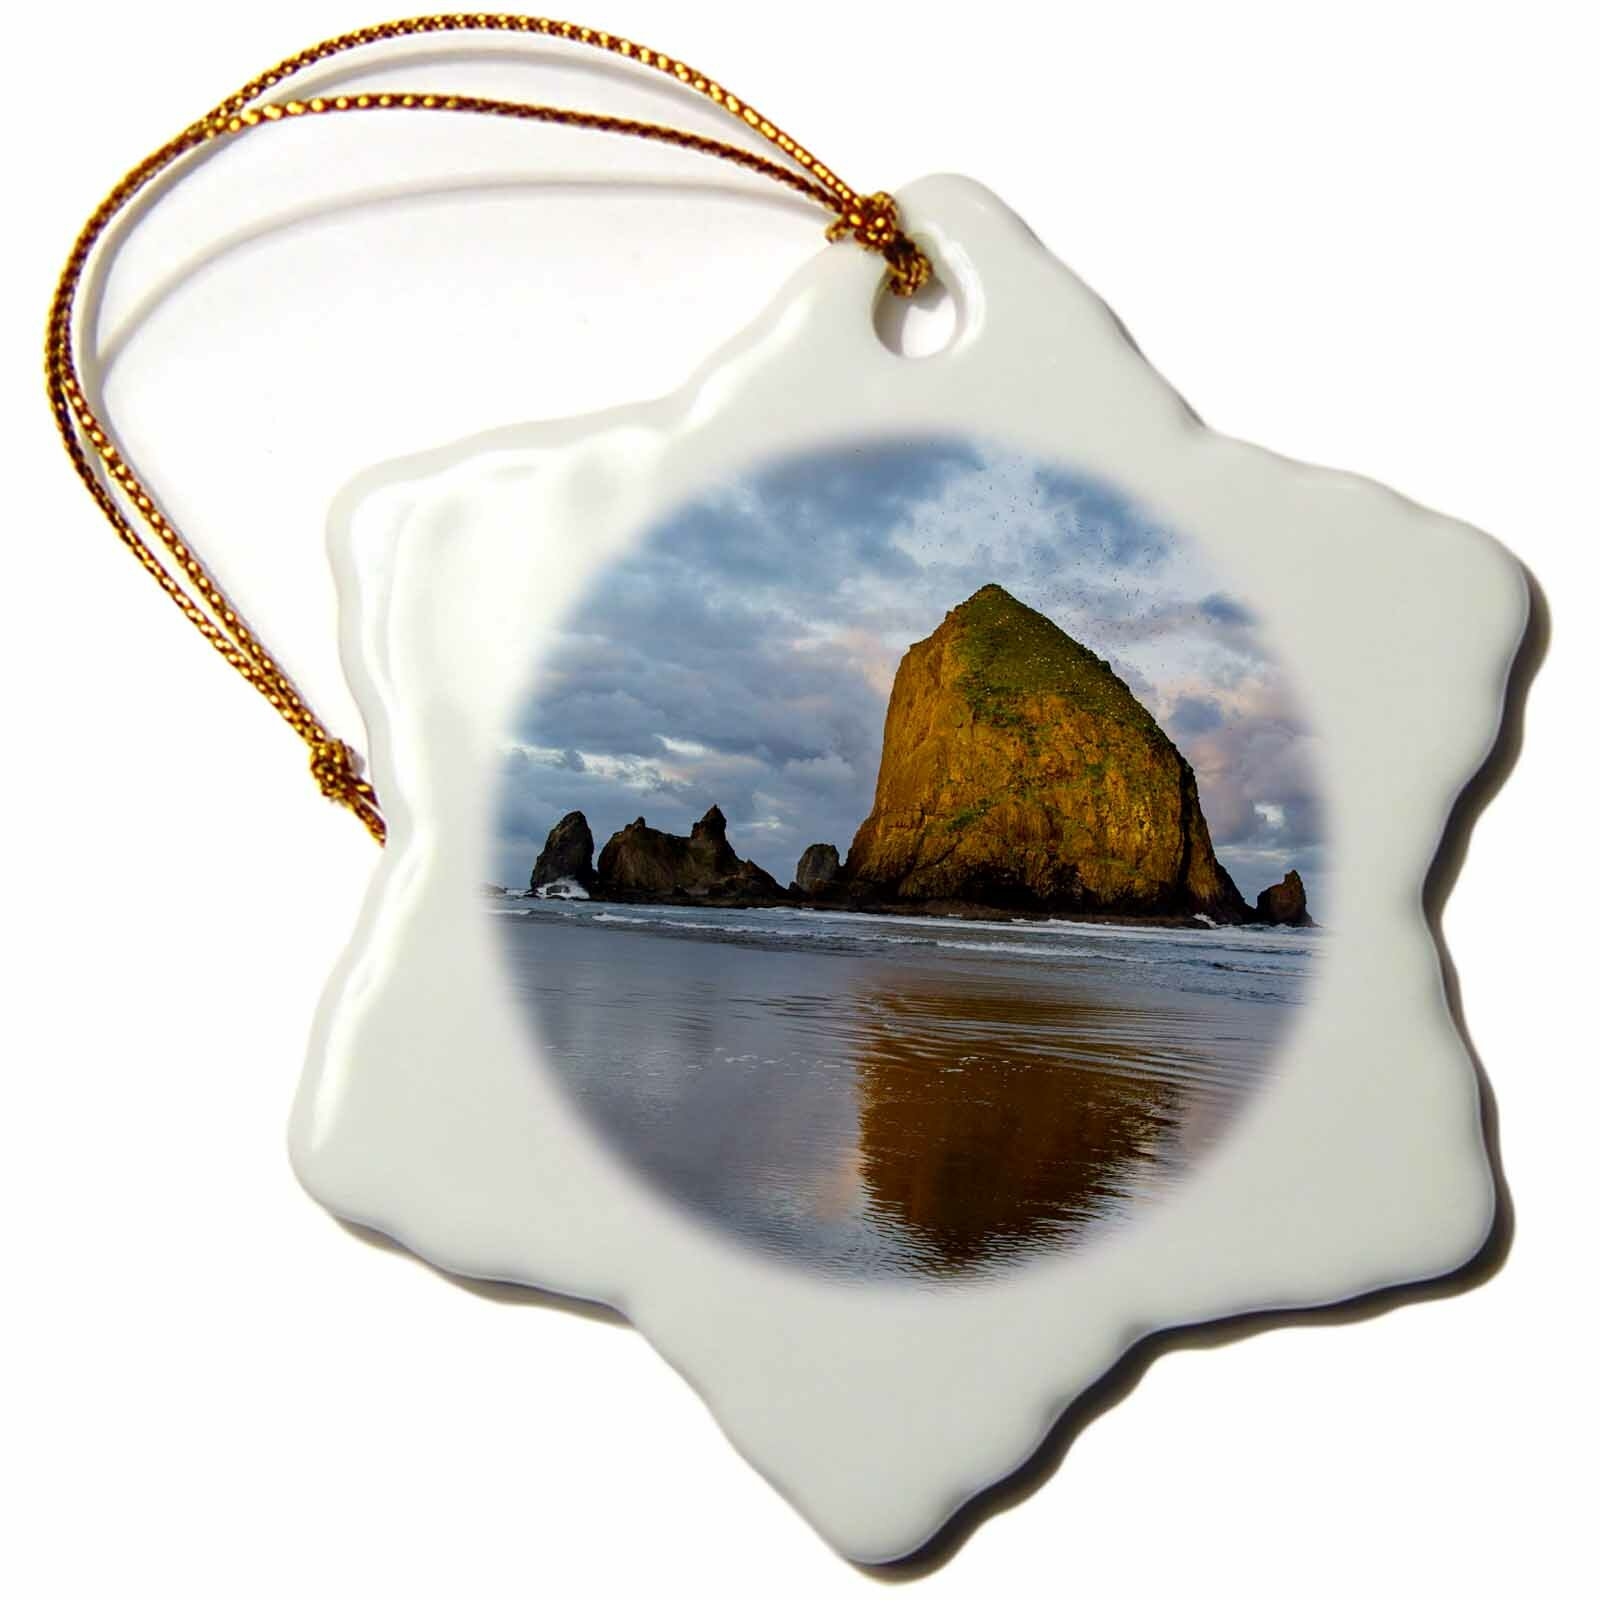 The Holiday Aisle Haystack Rock In Cannon Beach Oregon Usa Snowflake Holiday Shaped Ornament Wayfair